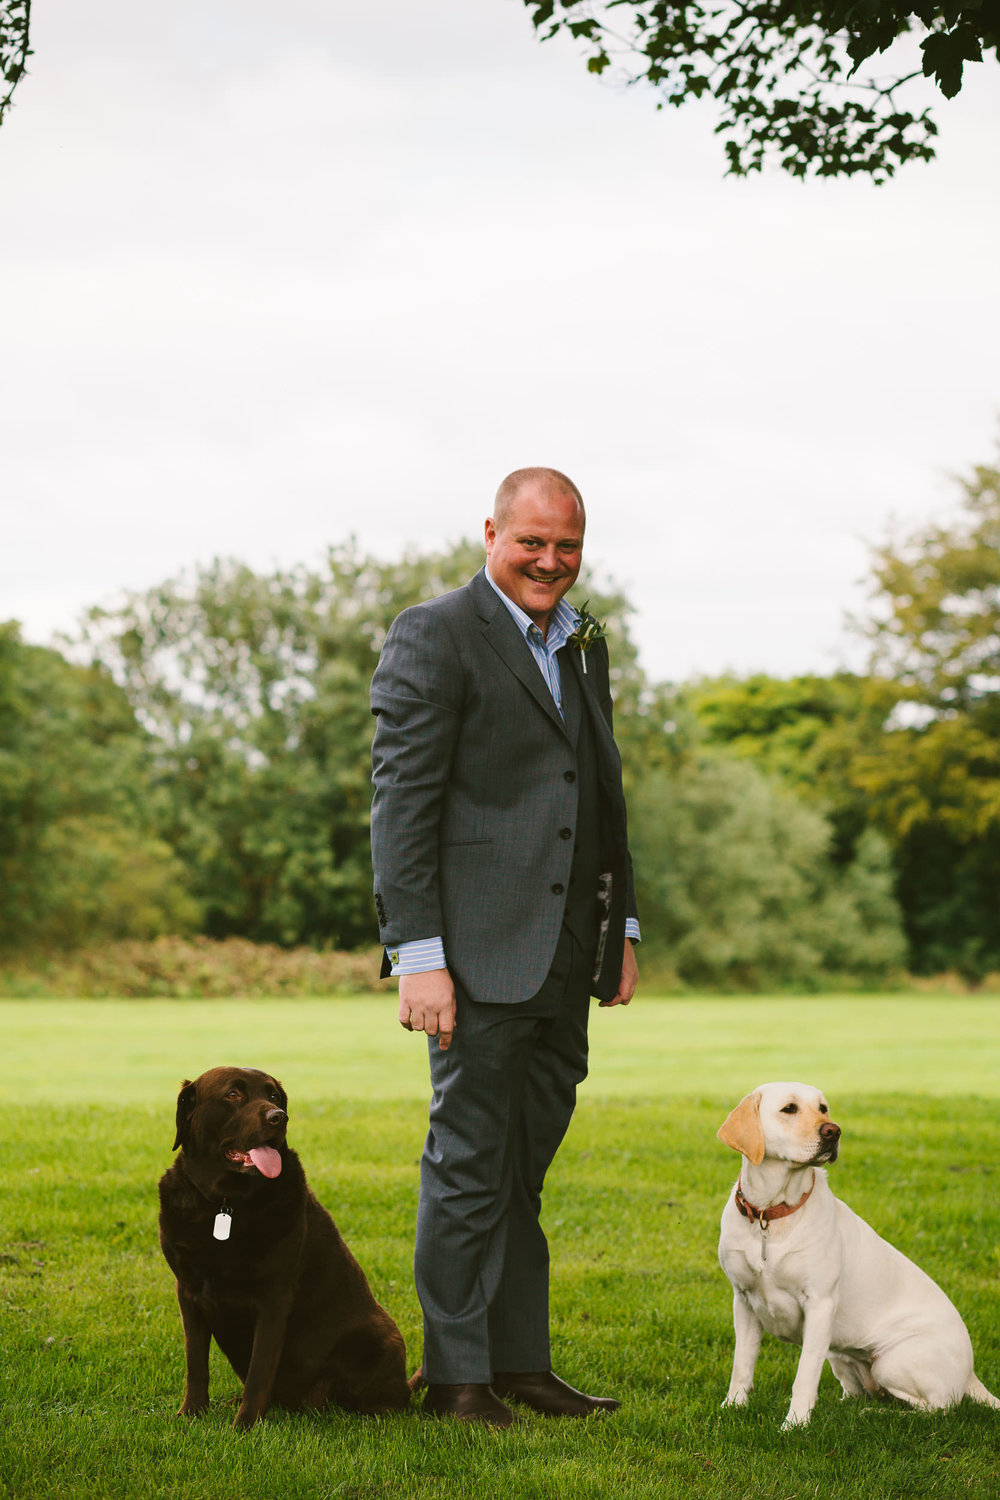 Groom poses with his two dogs before his wedding ceremony